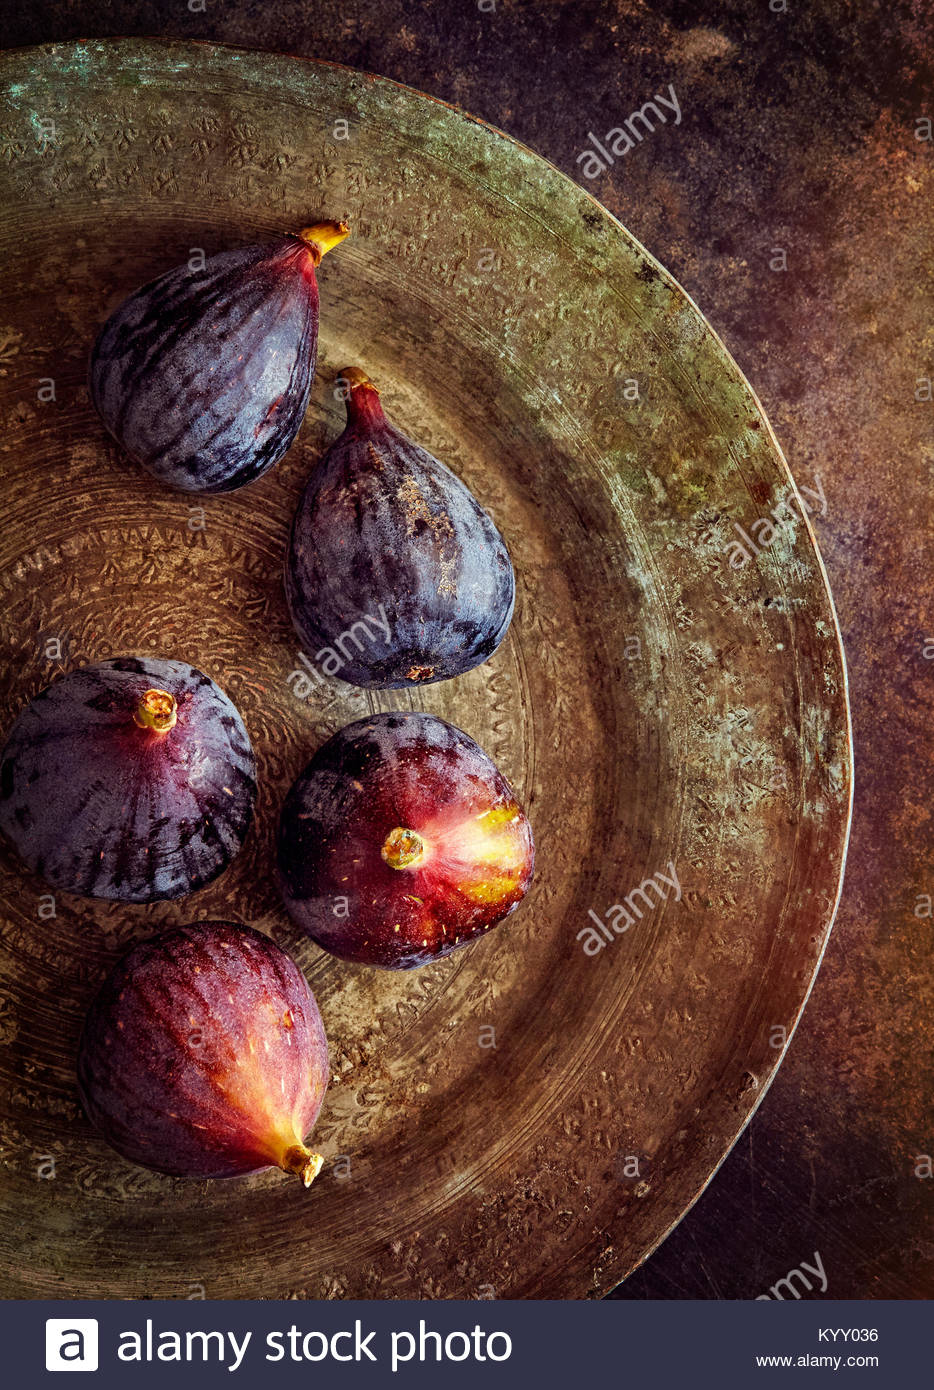 Overhead view of figs in metallic plate - Stock Image